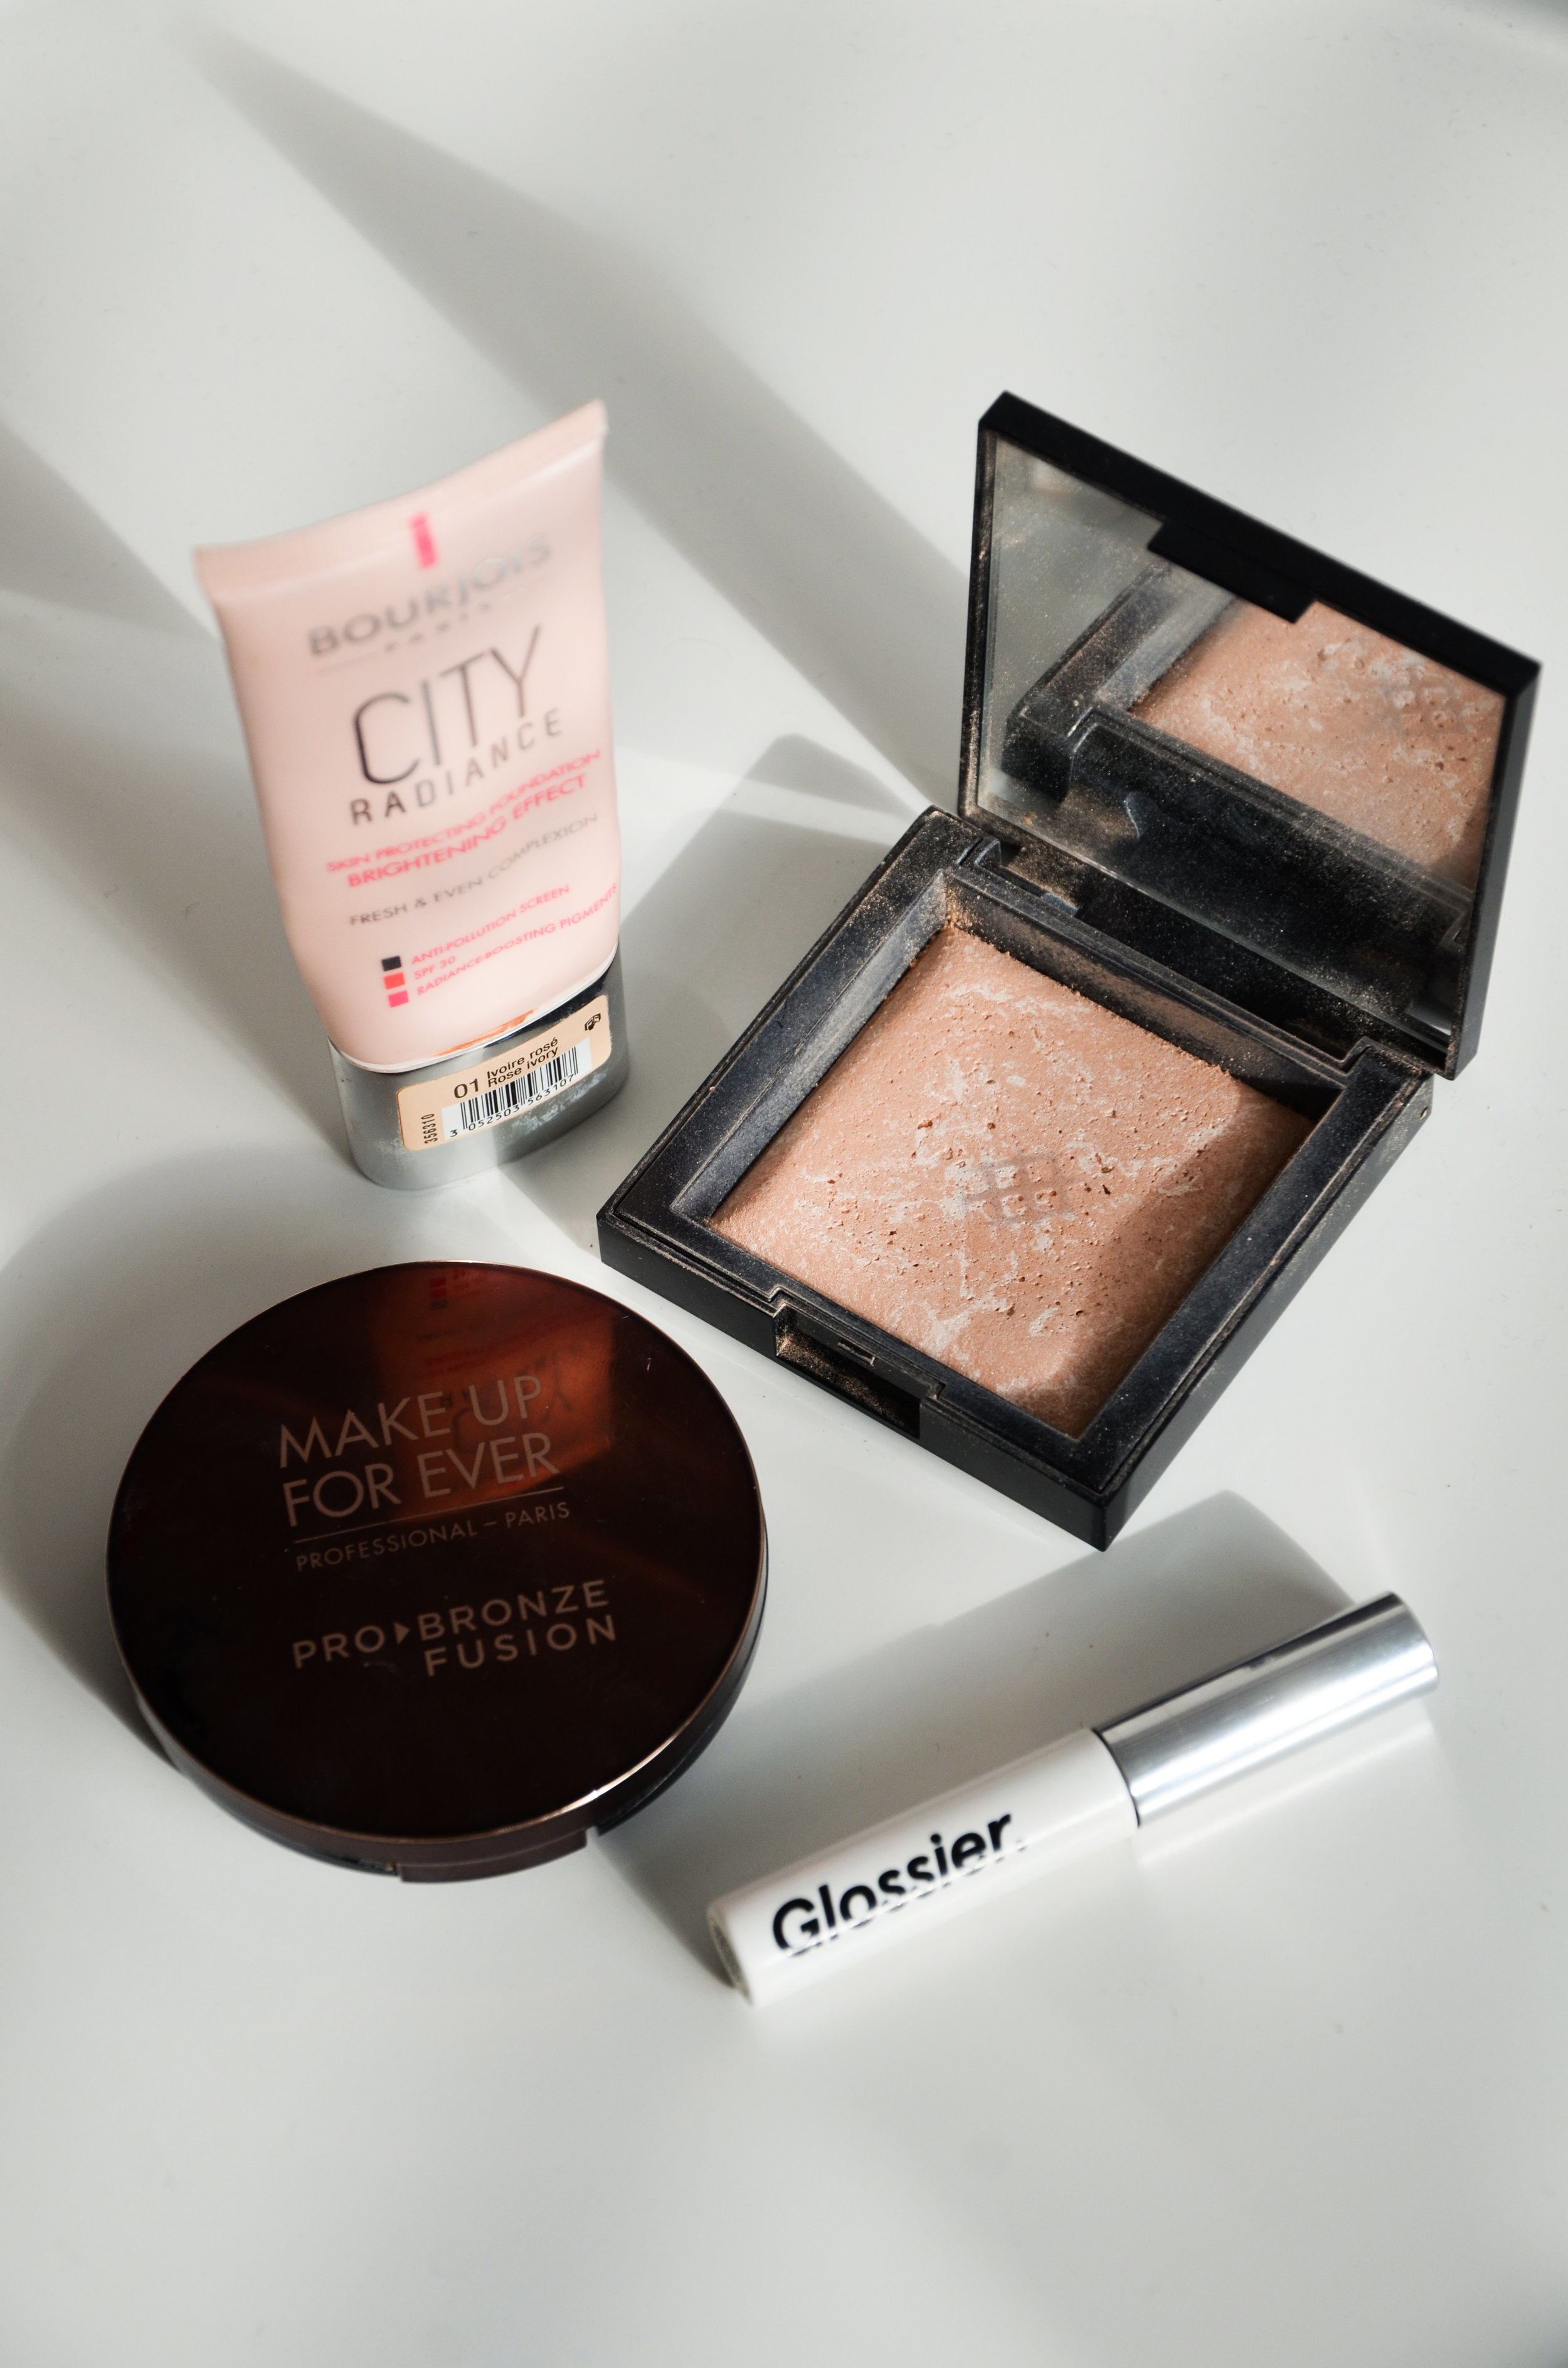 4-makeup-products-is-all-you-need.jpg